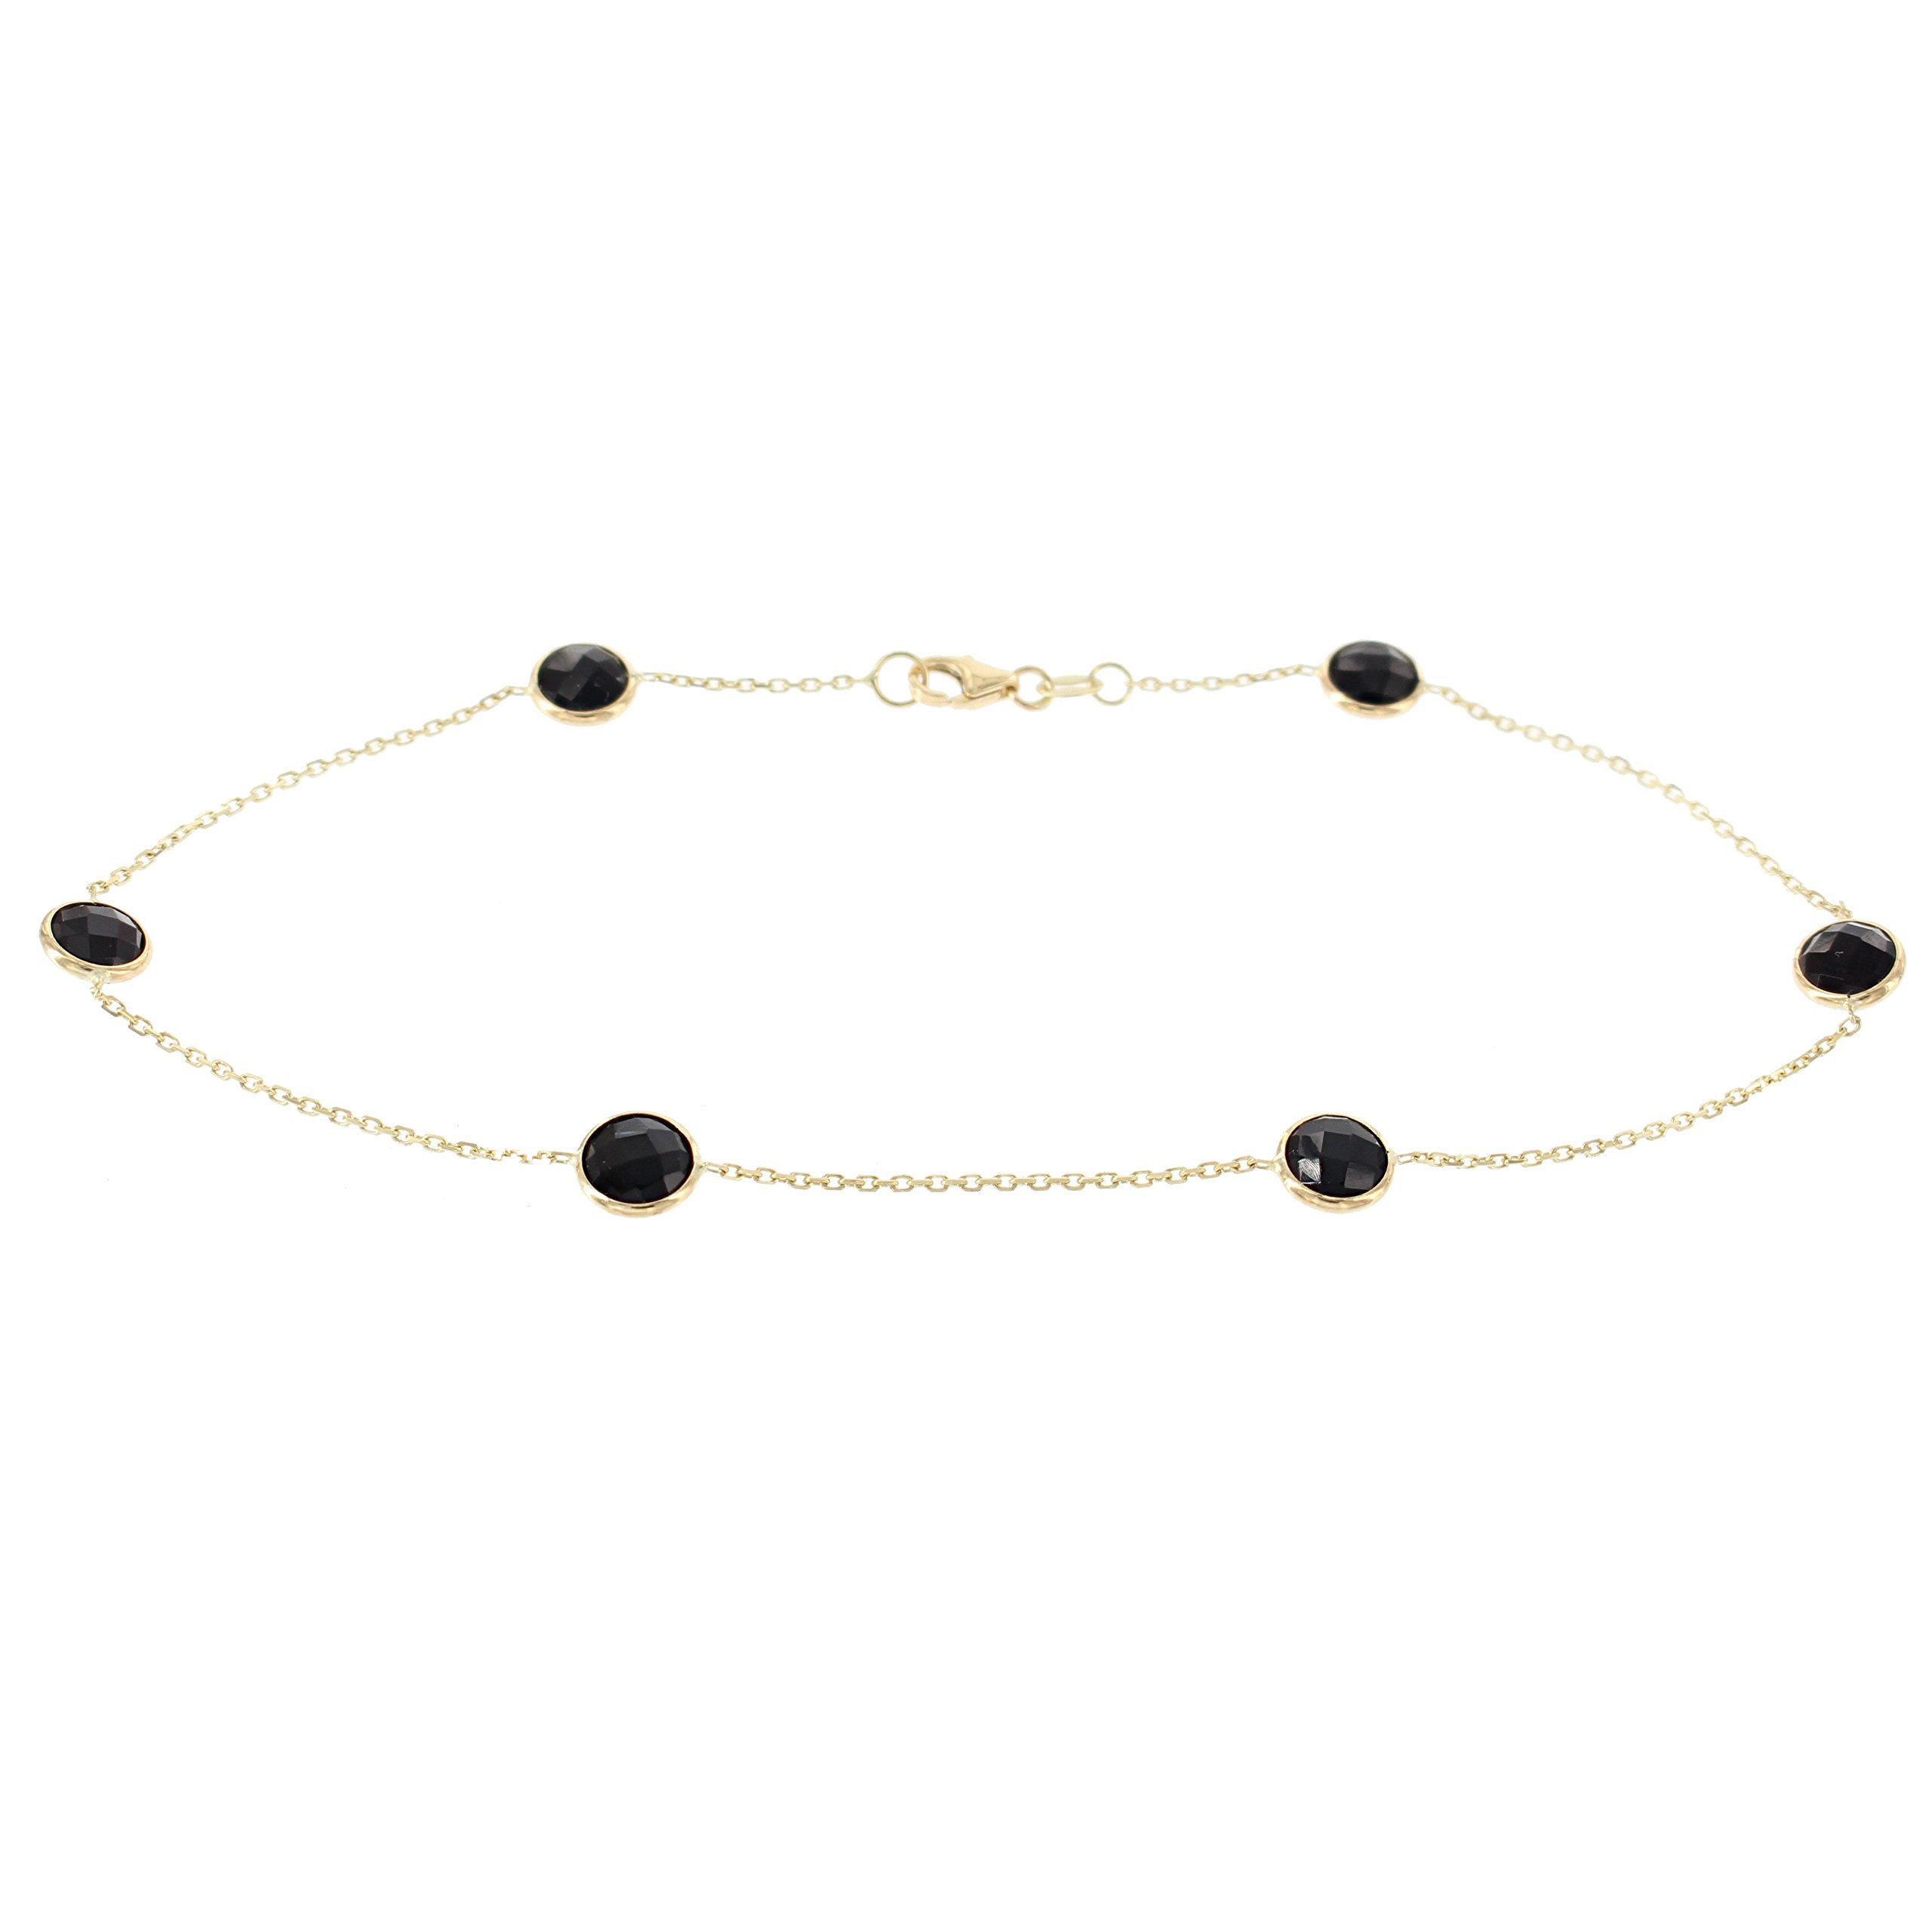 14k Yellow Gold Ankle Station Bracelet With Black Onyx Gemstones (9 - 11 inches)